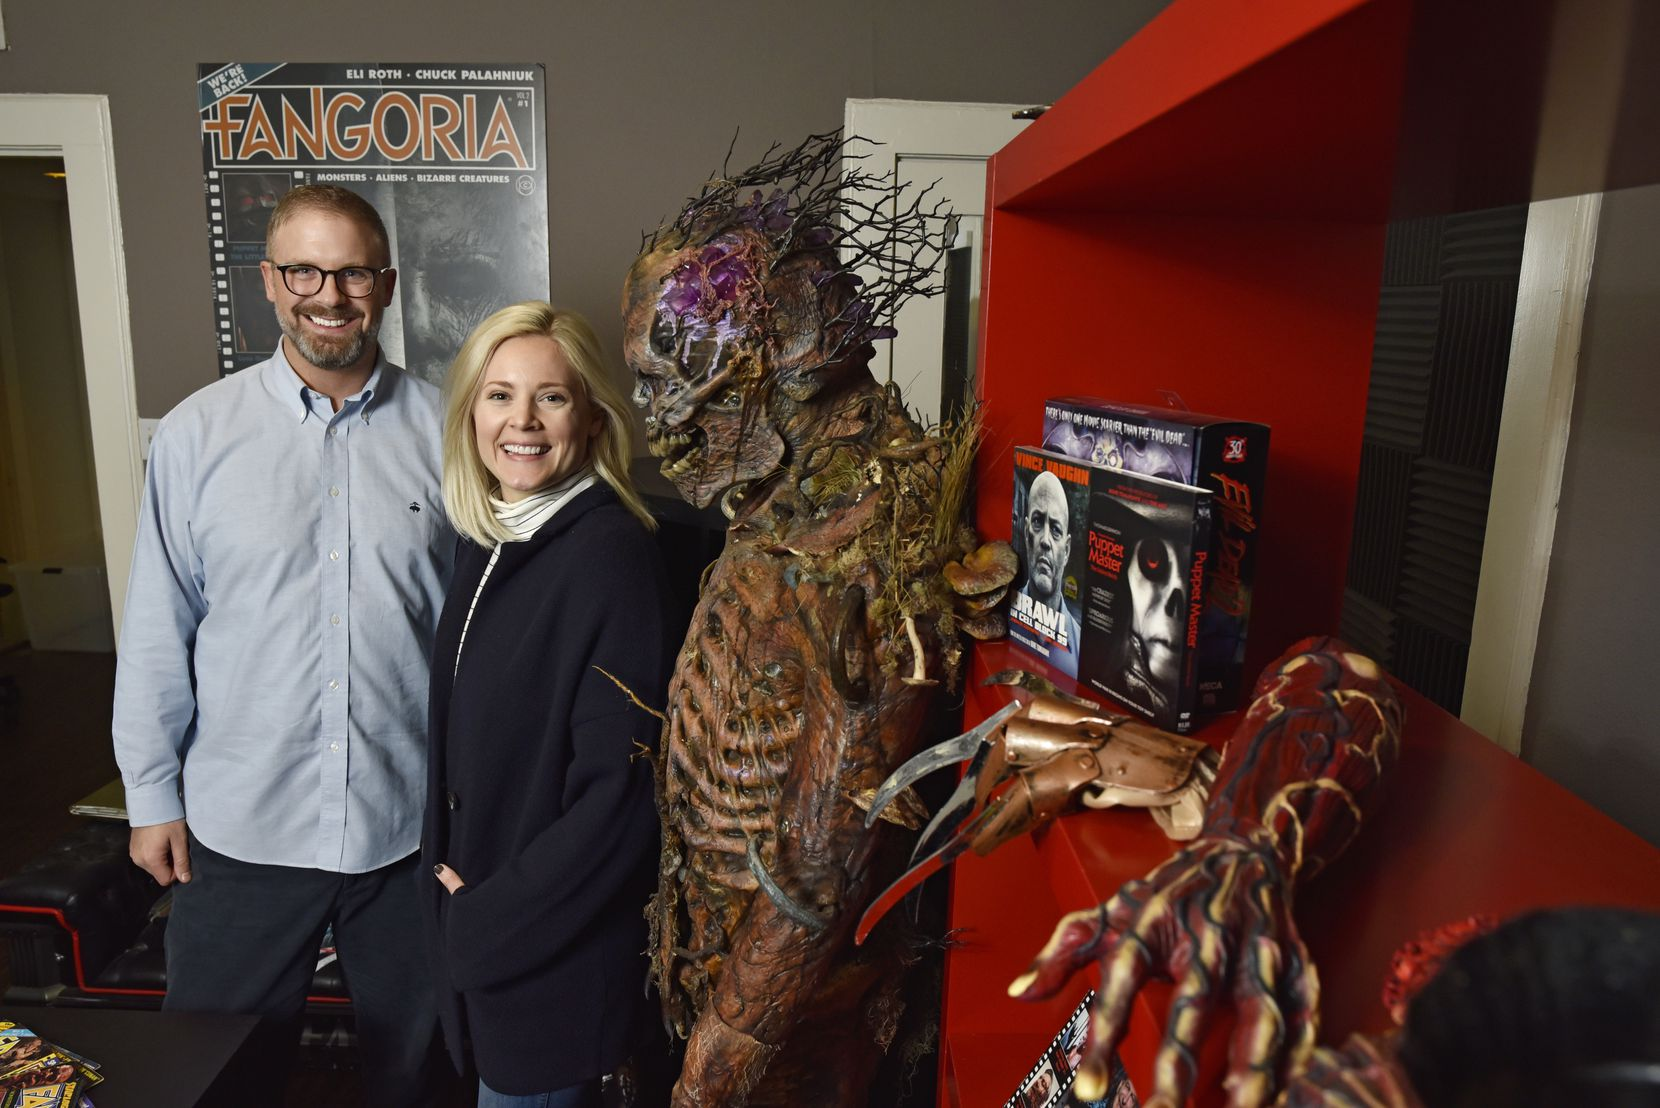 Cinestate chief executive officer Dallas Sonnier and vice president of production Amanda Presmyk in a storage room at their offices in Dallas on Jan. 08, 2019. Cinestate, a Dallas film production company, also publishes the horror magazine Fangoria.